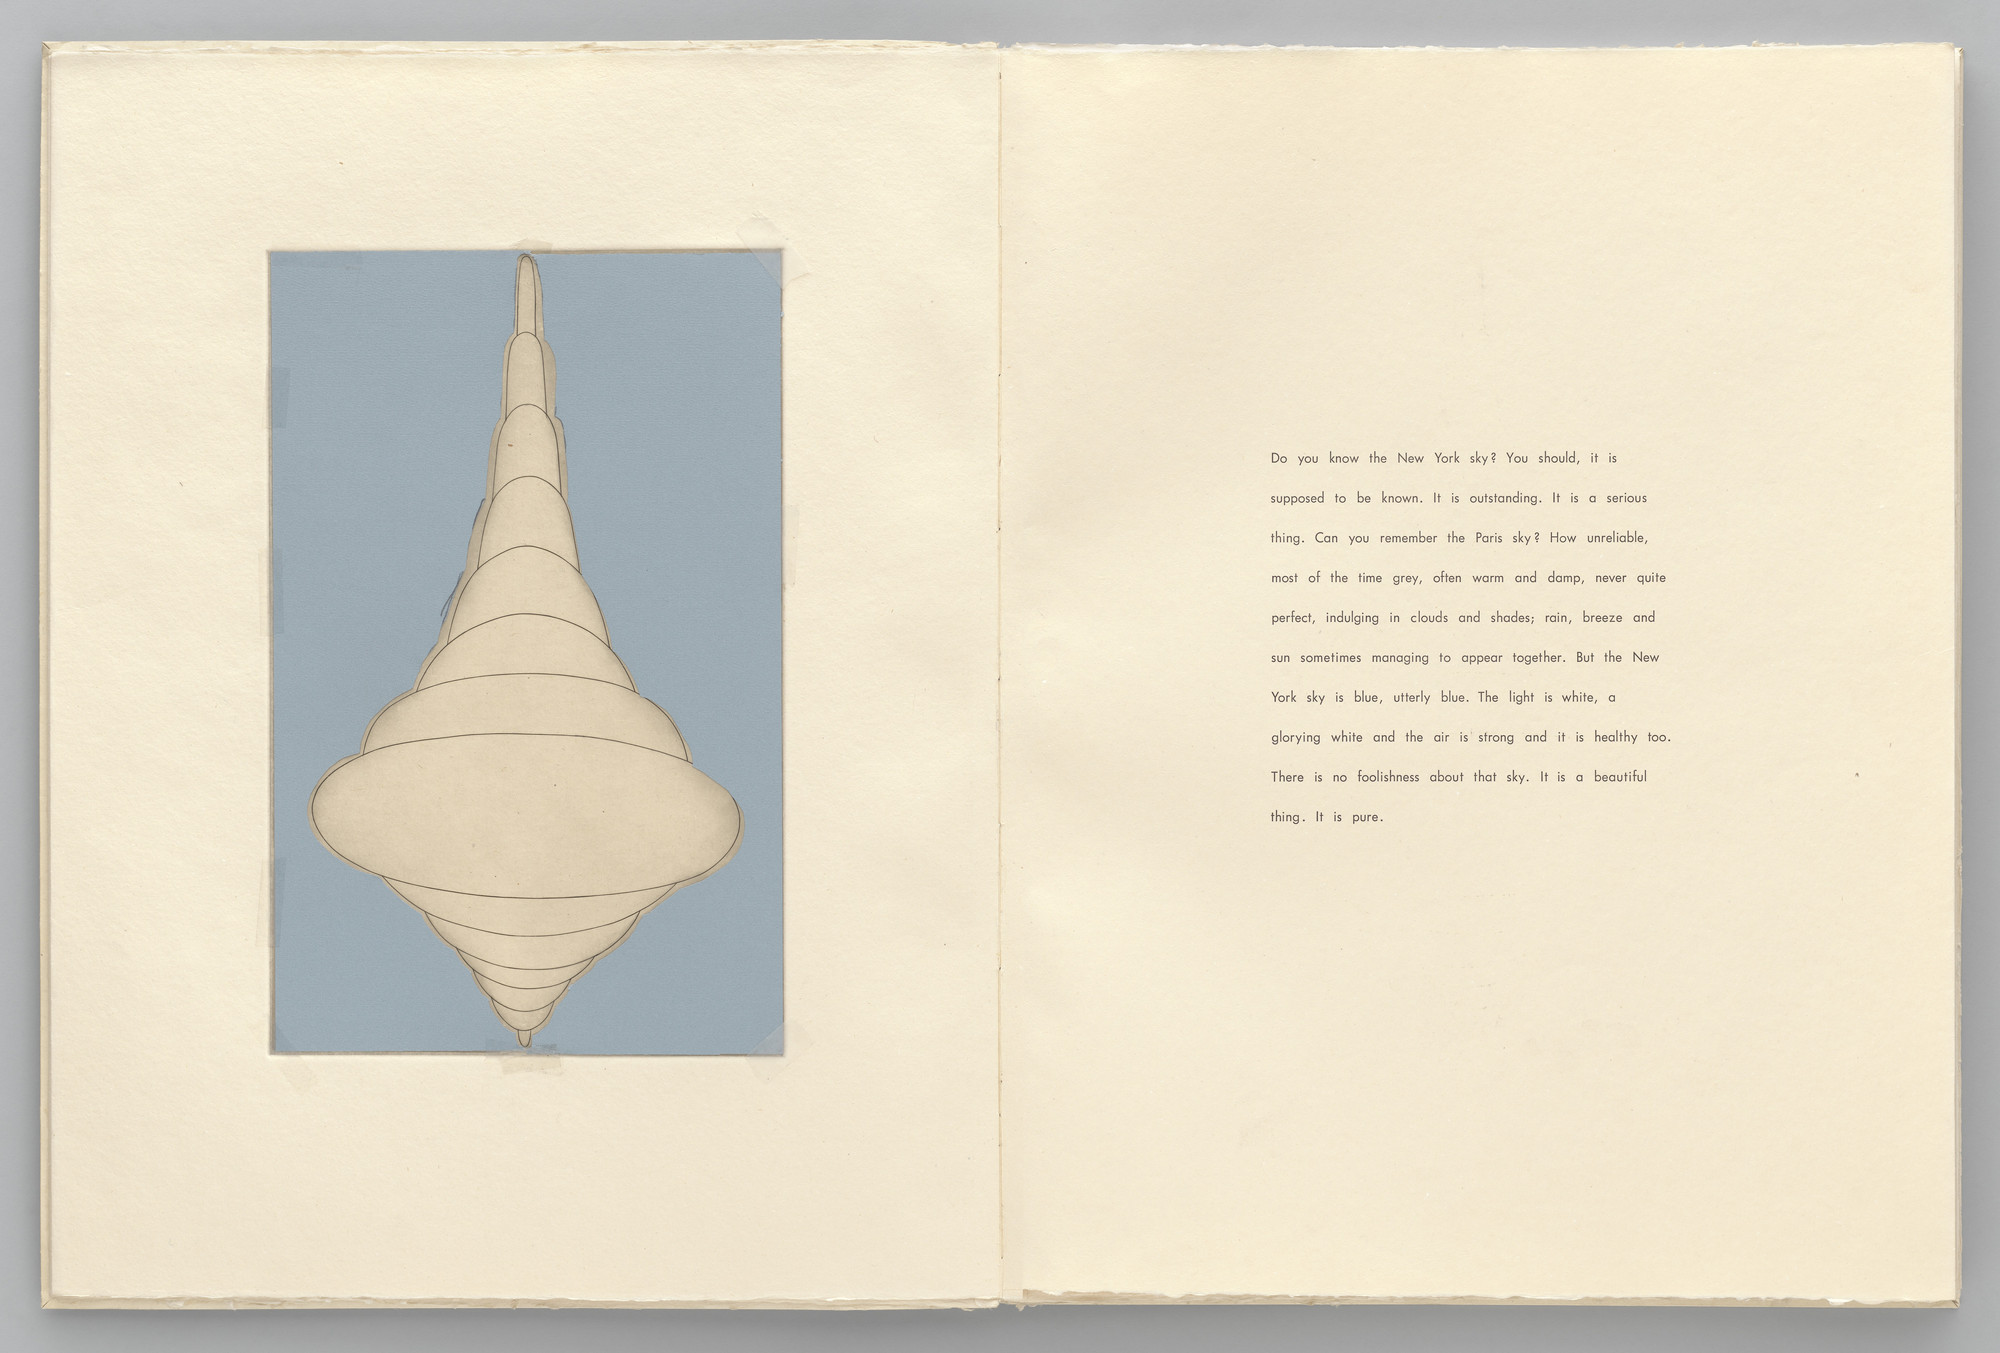 Louise Bourgeois. Untitled, plate 1 of 8, from the maquette of the illustrated book, the puritan. 1990